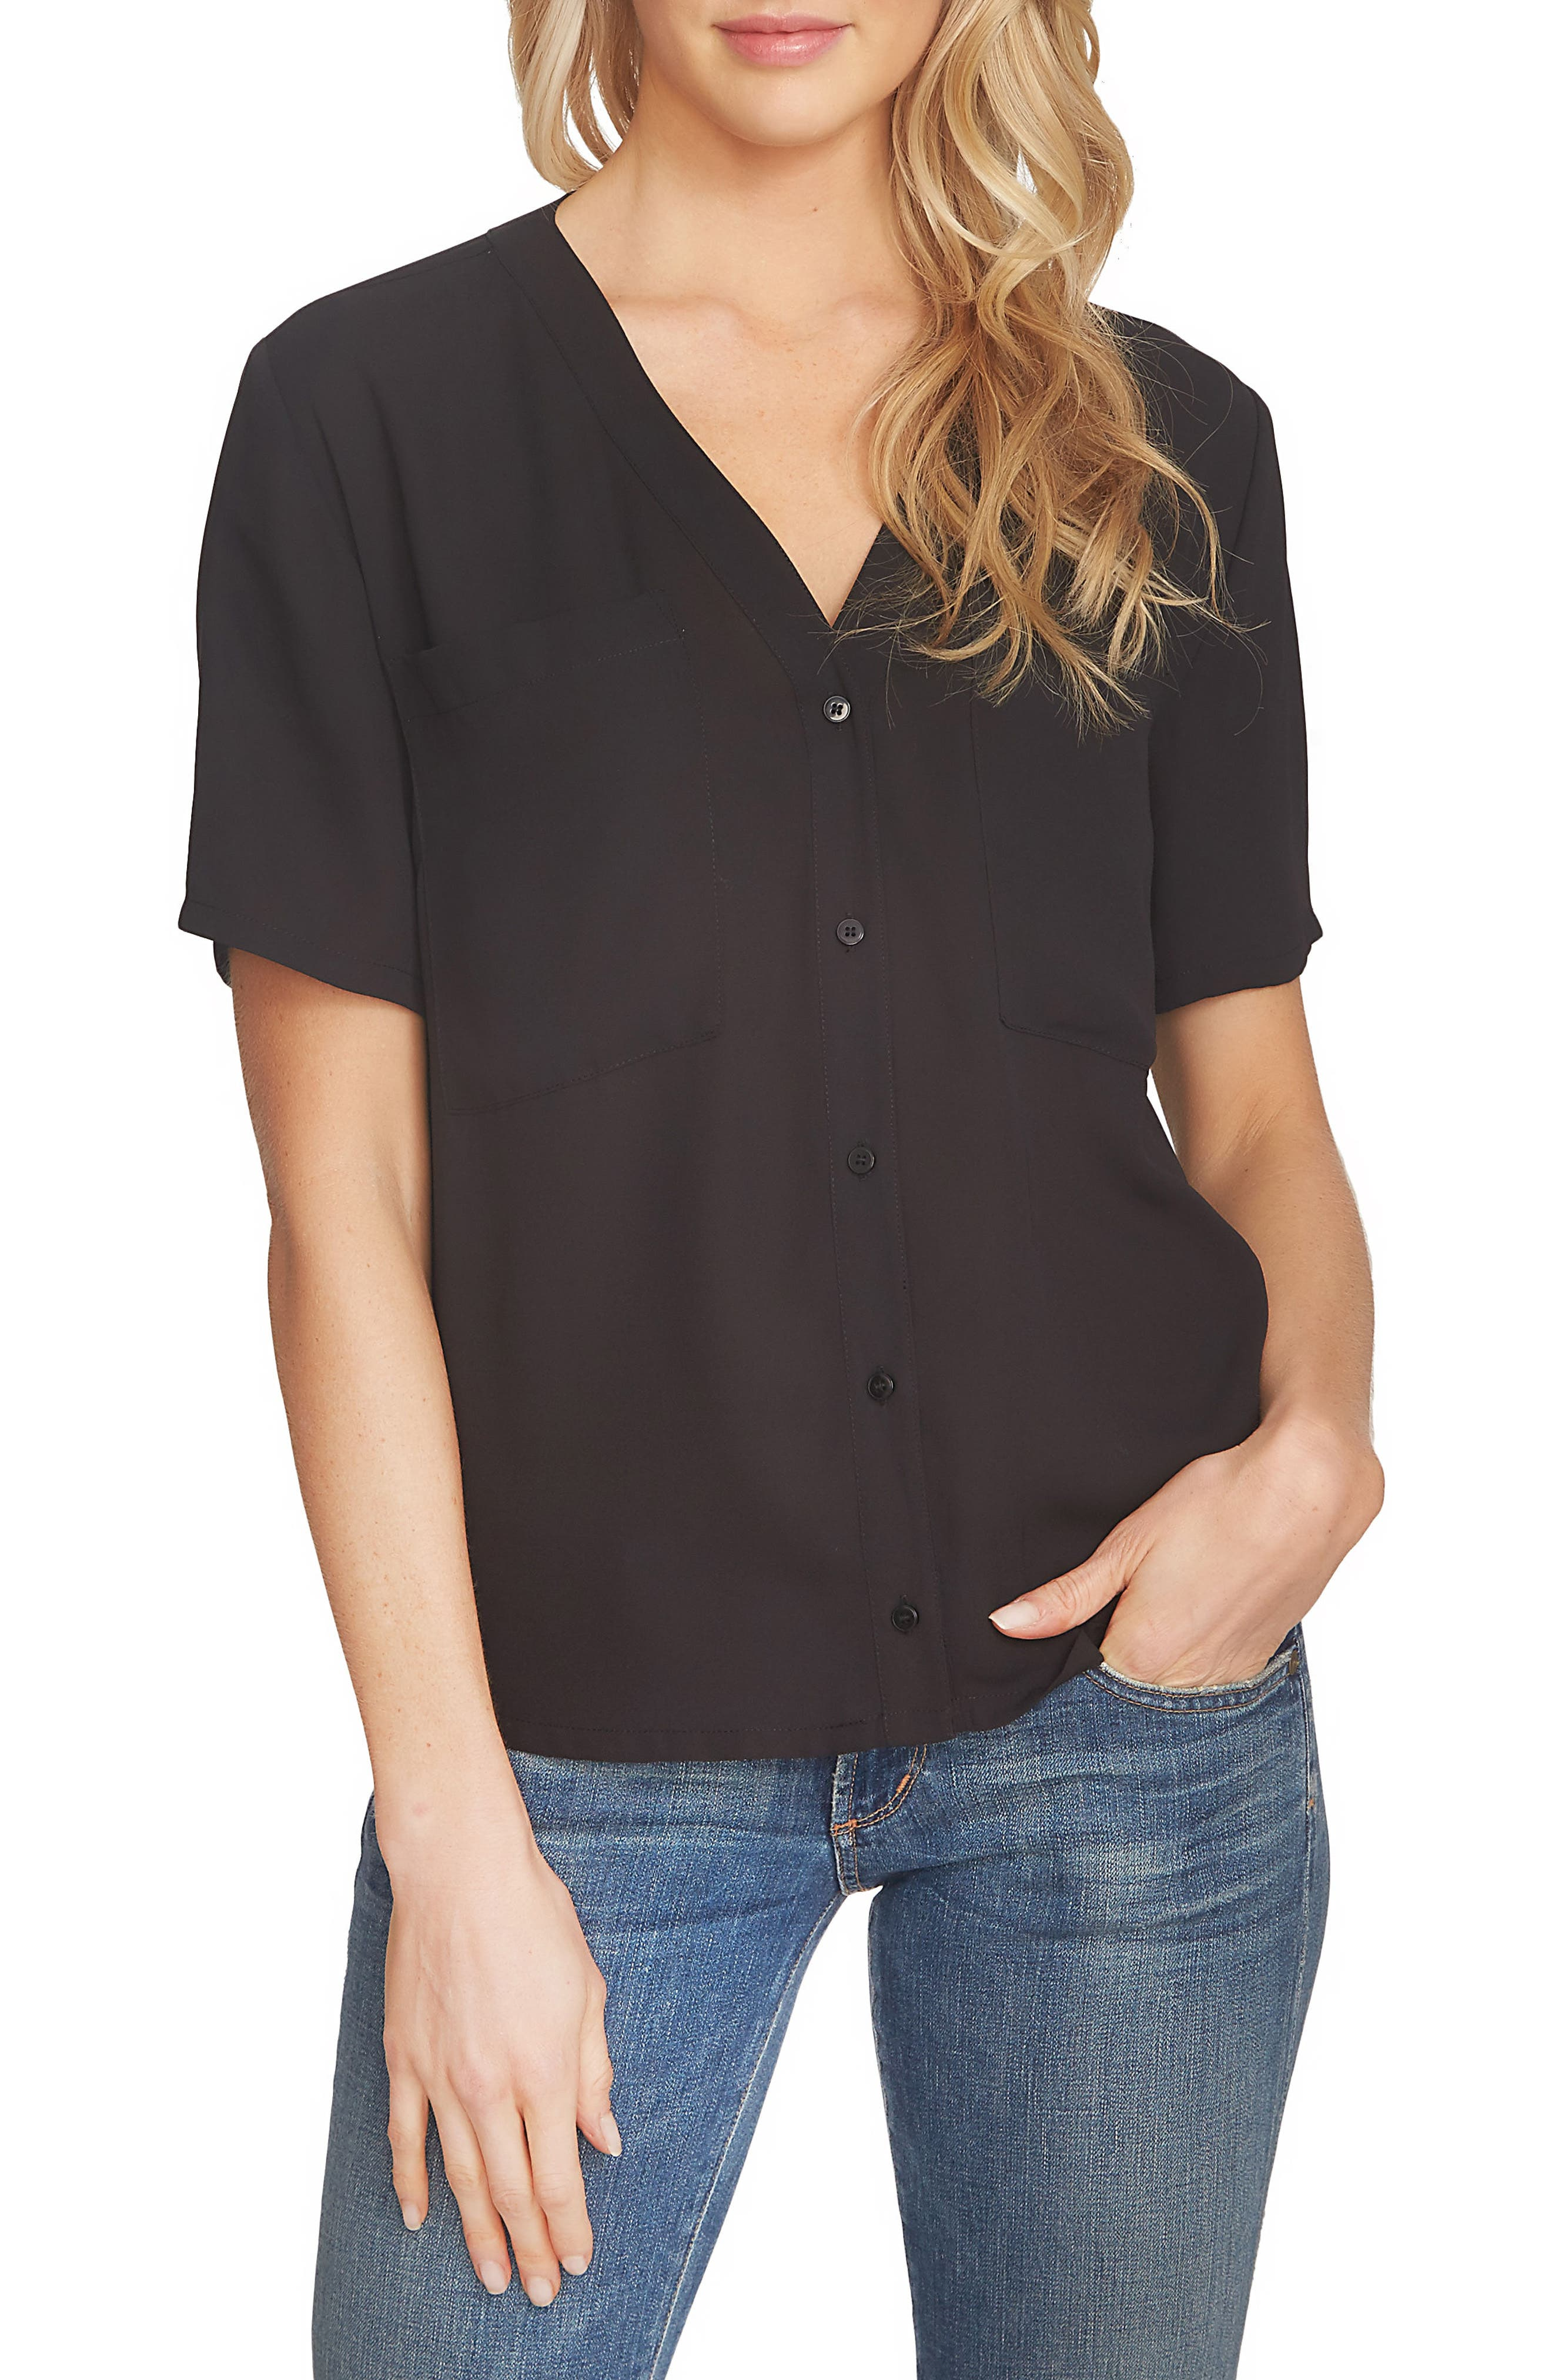 Alternate Image 1 Selected - 1.STATE V-Neck Button Front Blouse